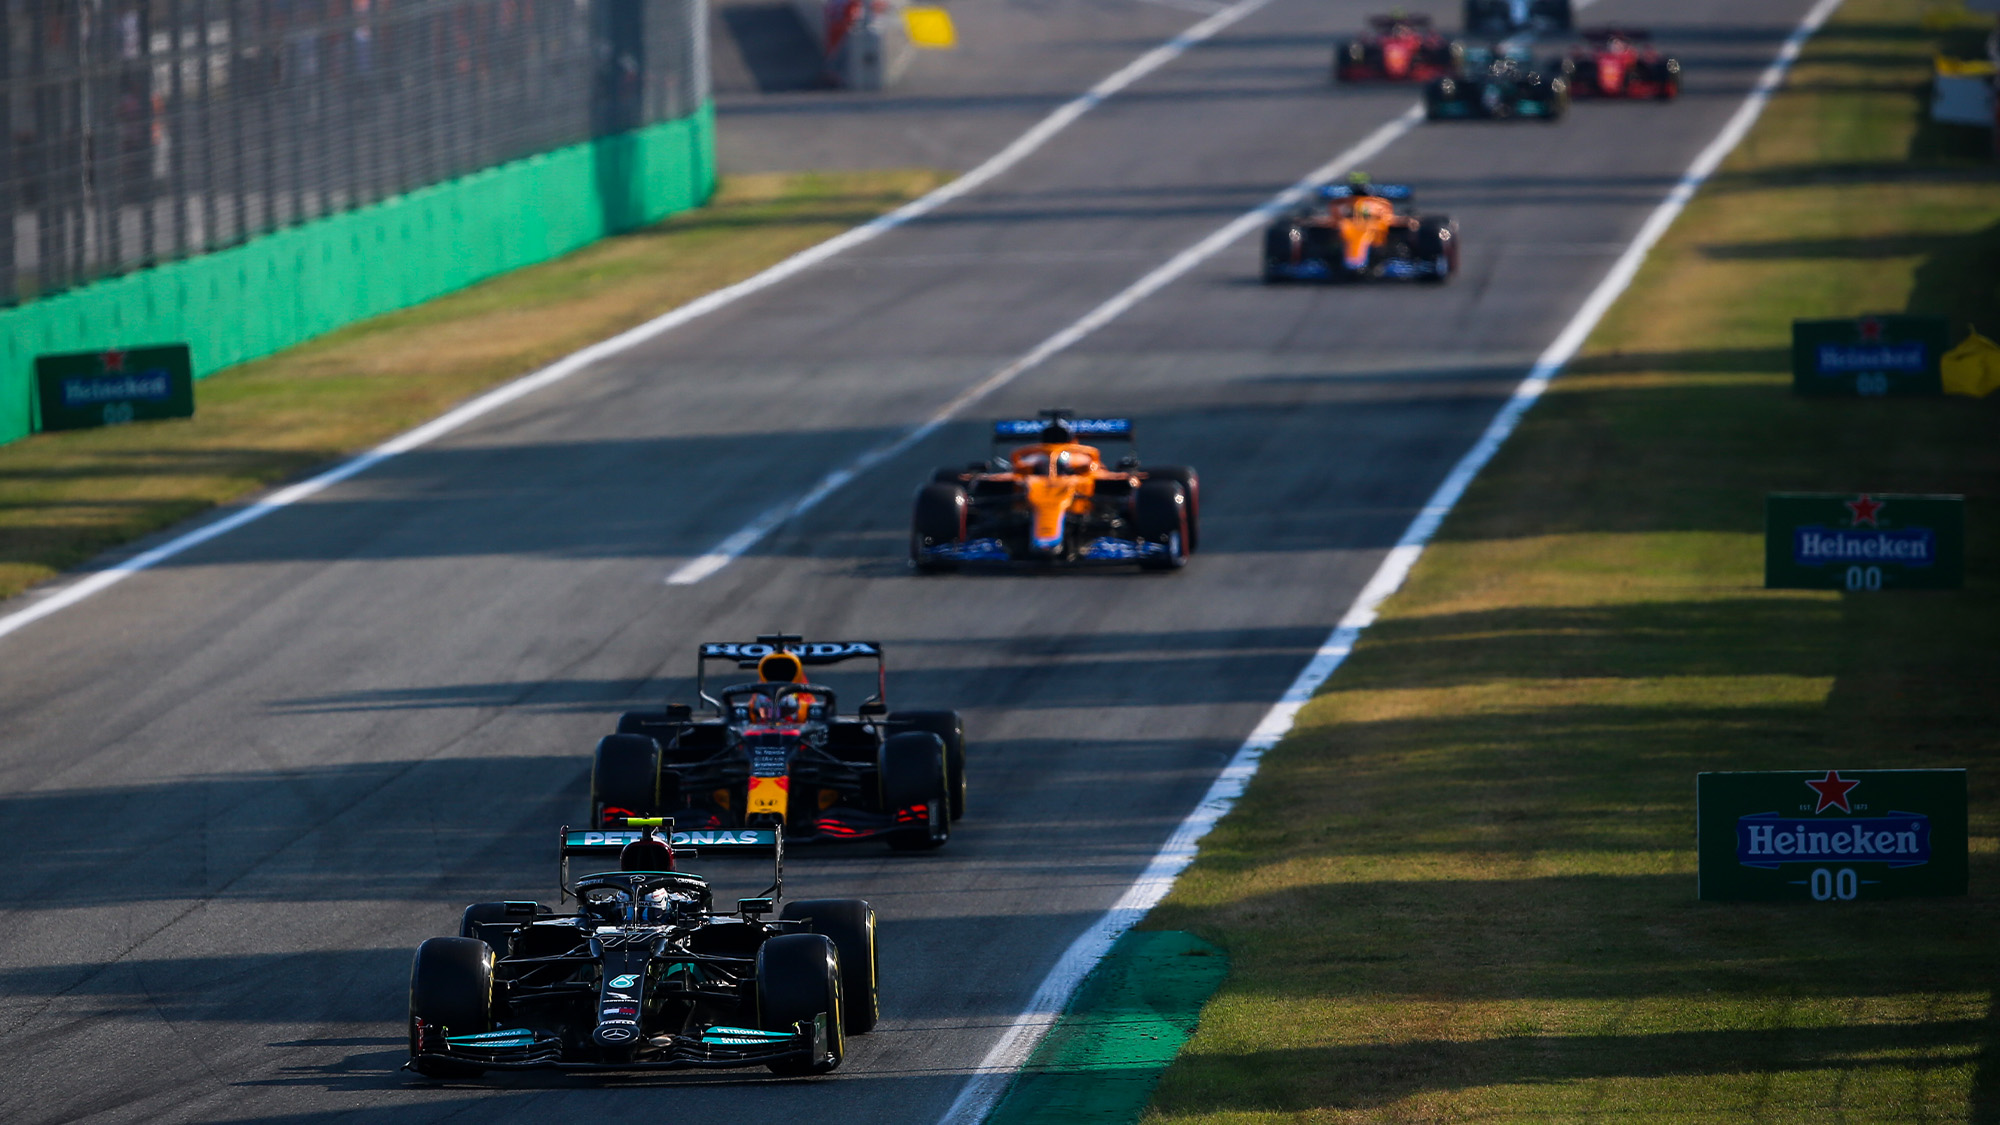 Valtteri Bottas leads the field in sprint qualifying for the 2021 Italian Grand Prix